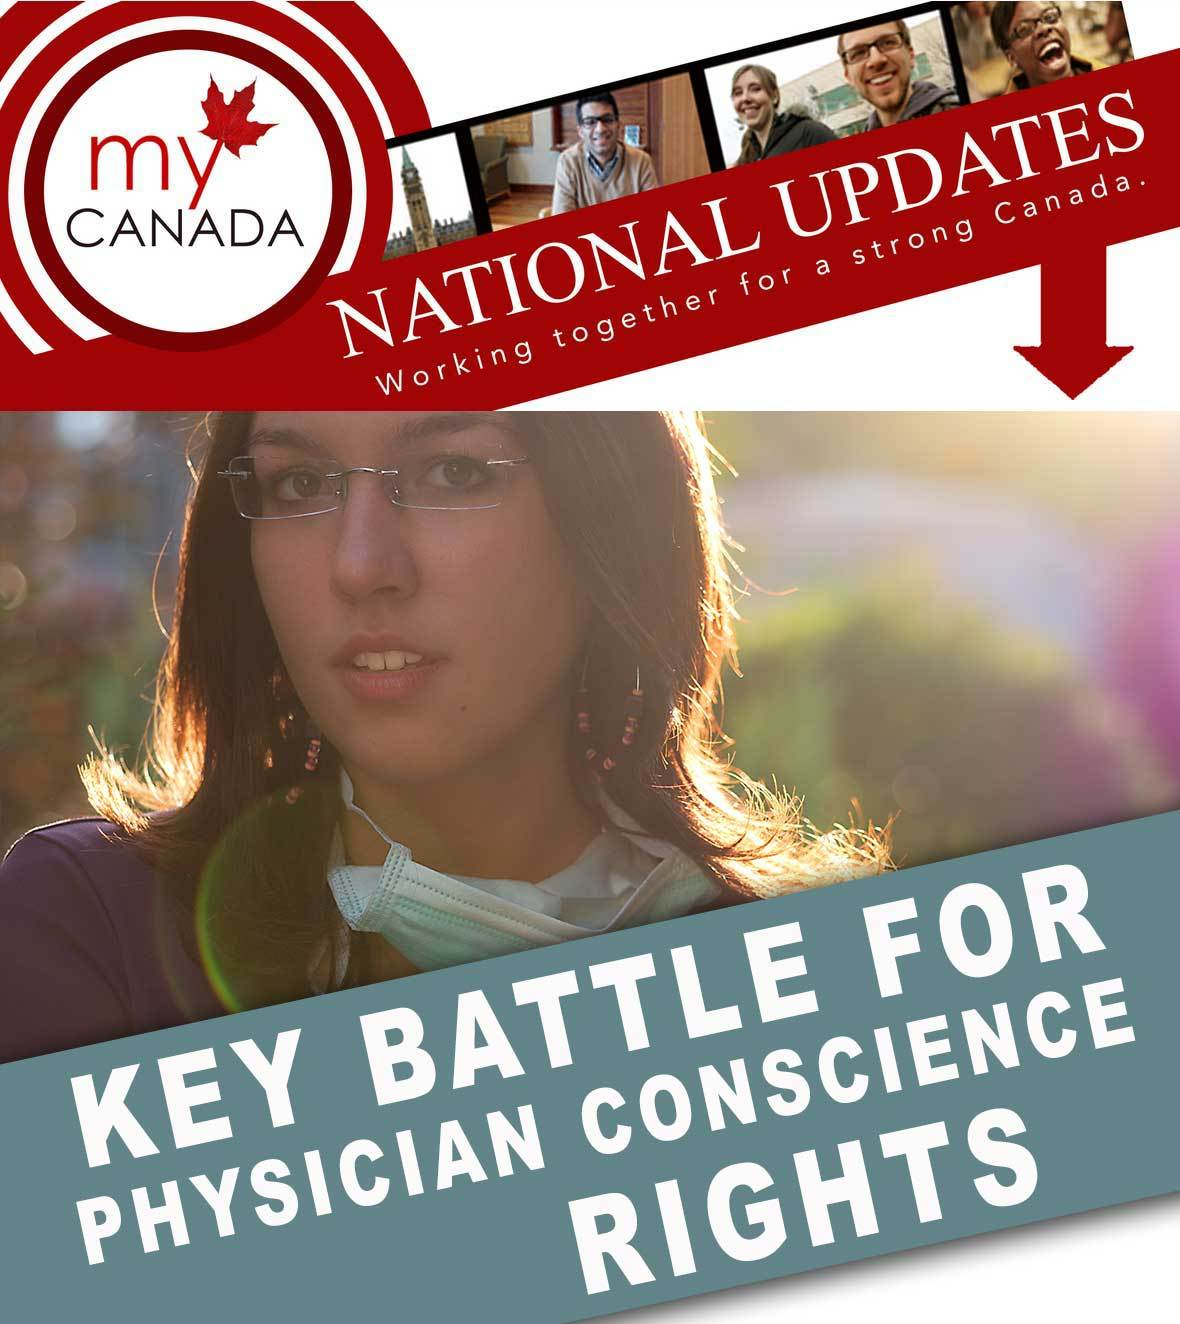 PhysicianConscience